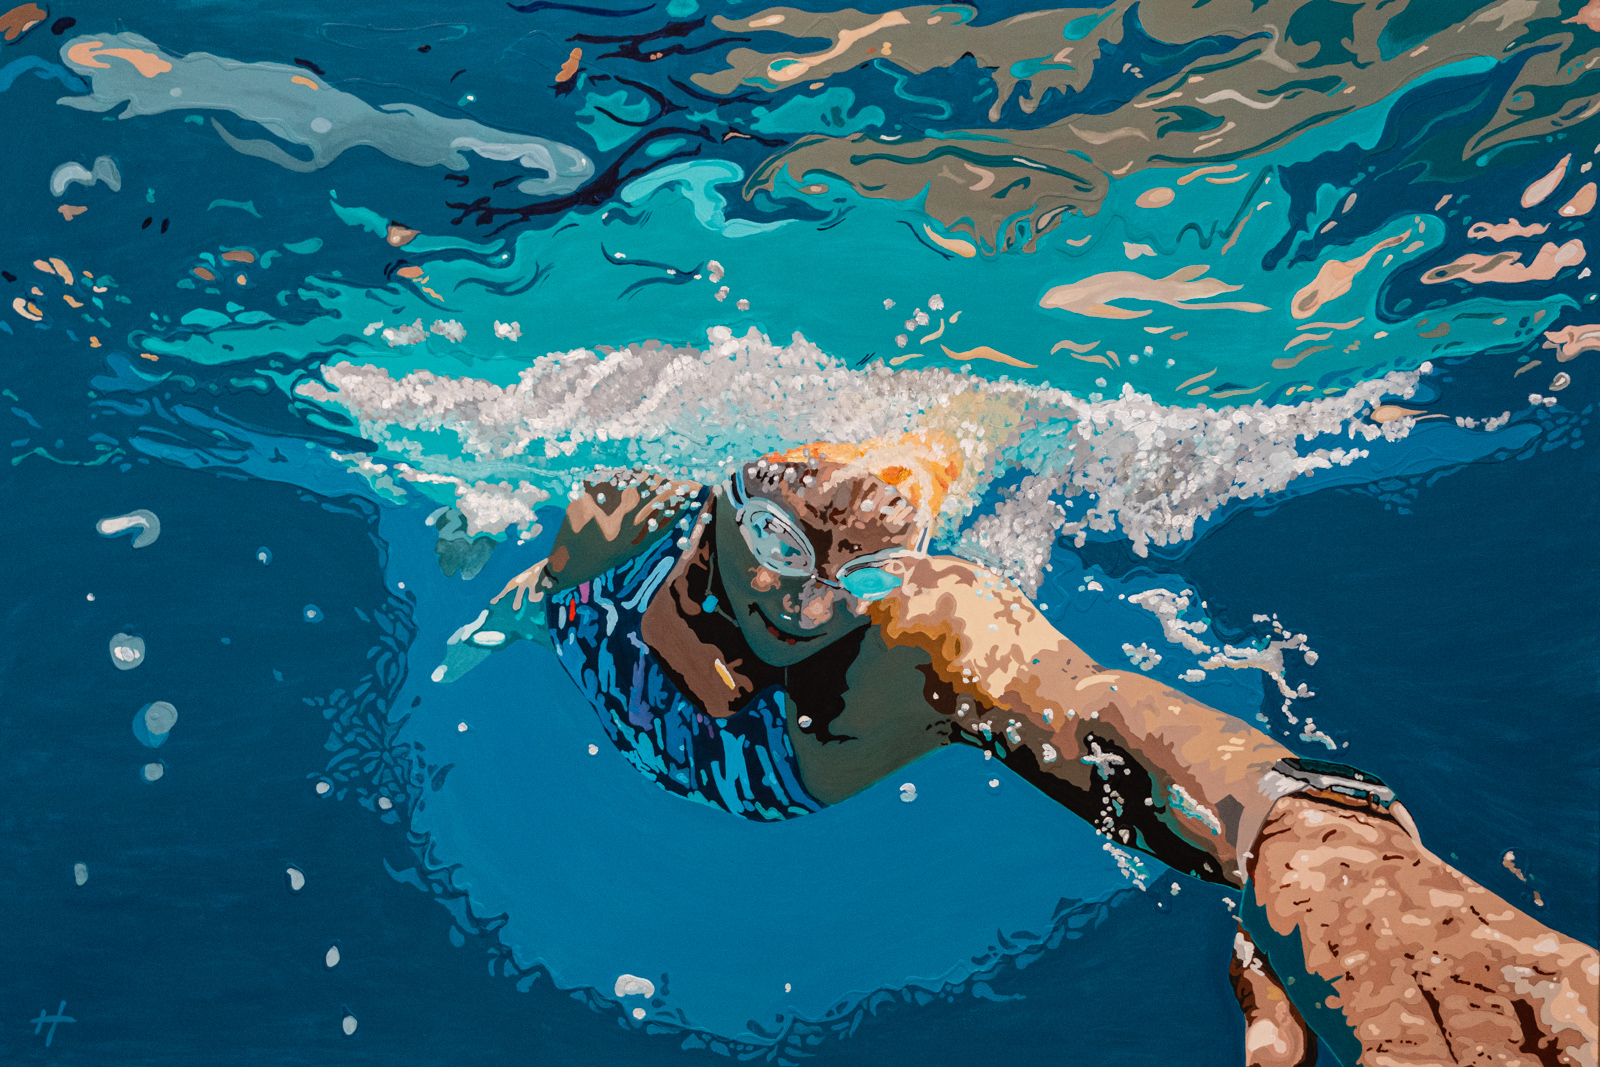 Heather Perry's underwater painting of a swimmer cutting through the water towards the viewer